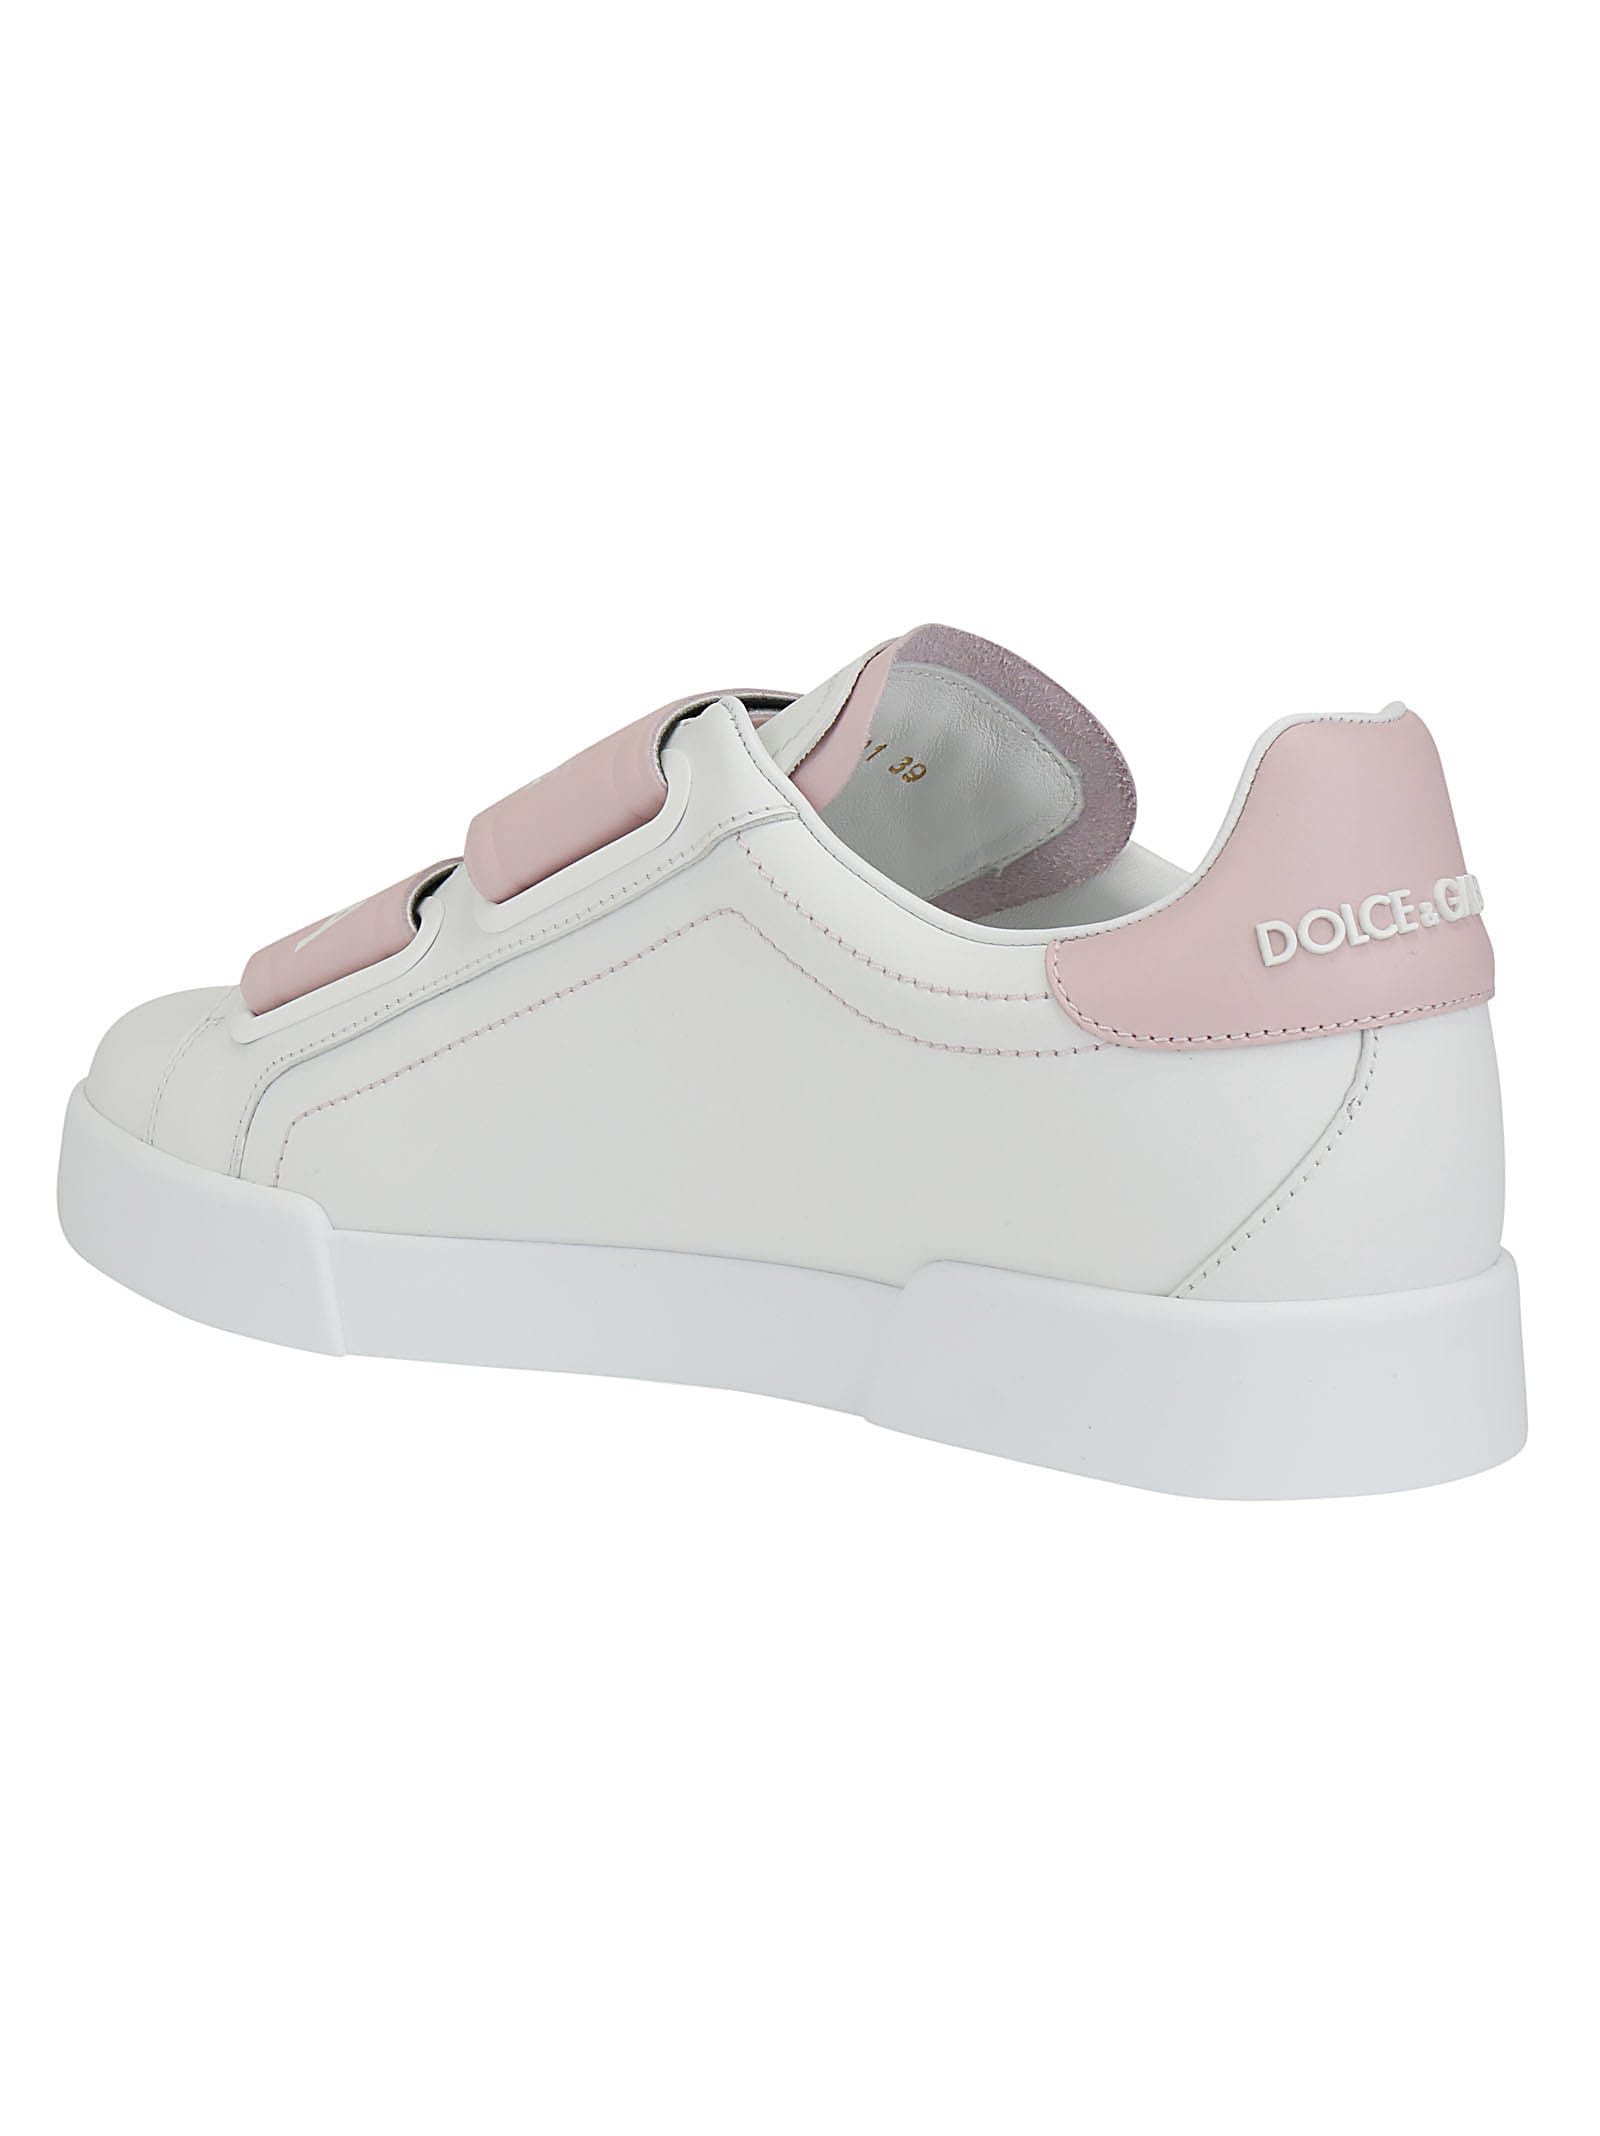 competitive price 42ac3 40657 Dolce E Gabbana Sneakers